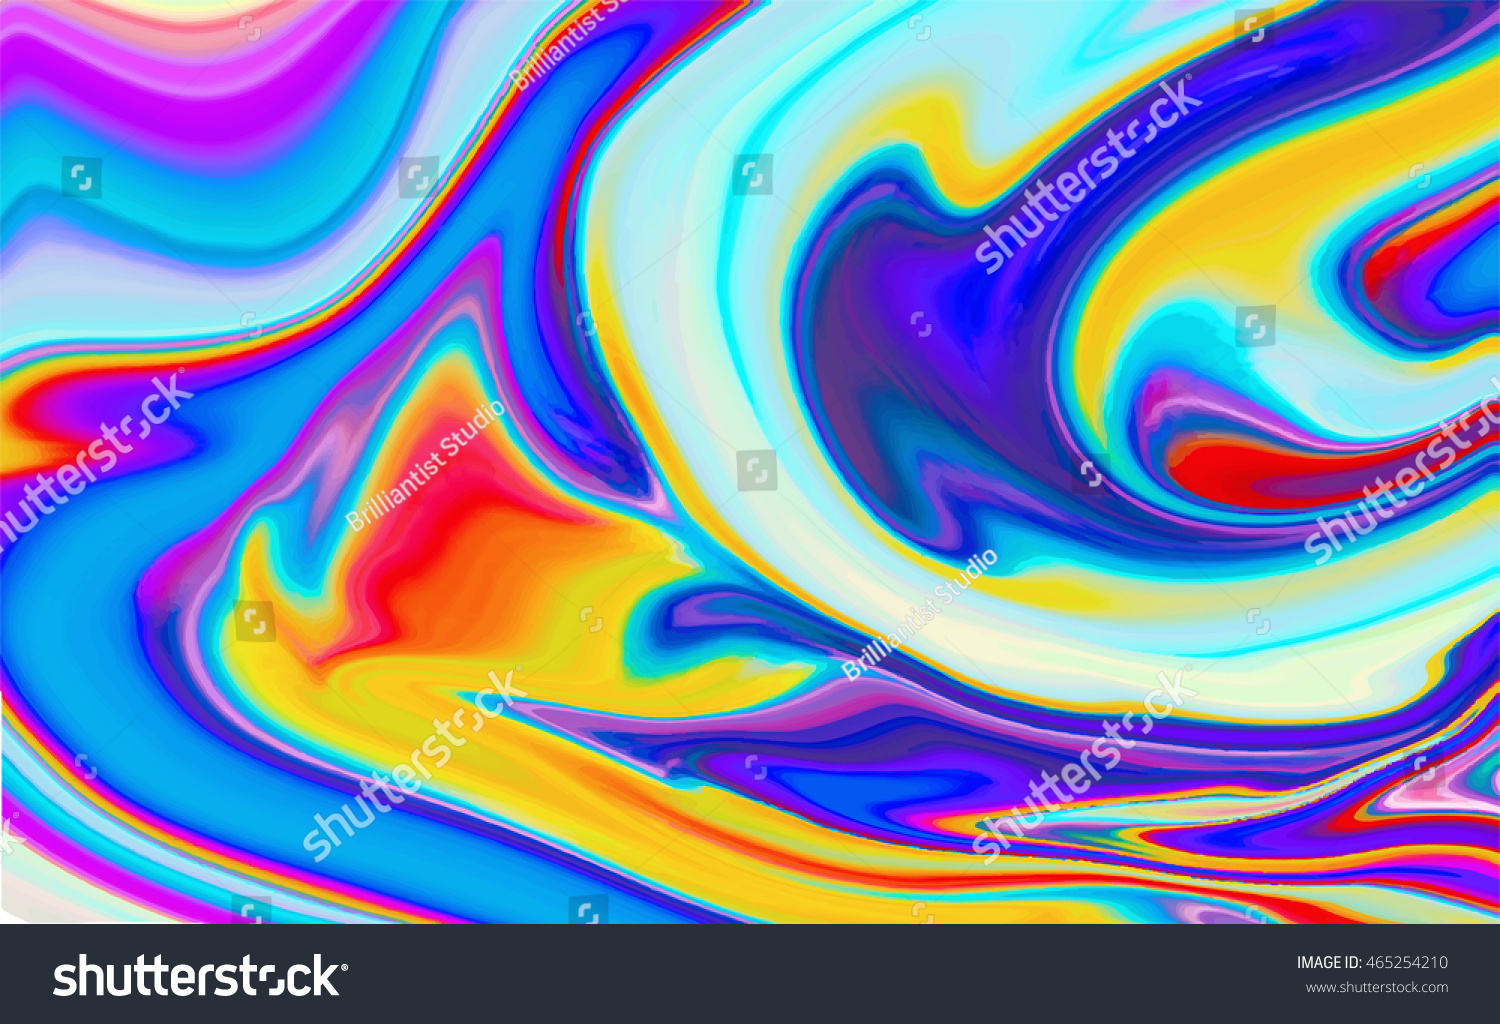 Color Design Art : Holographic abstract background fluid color design stock photo